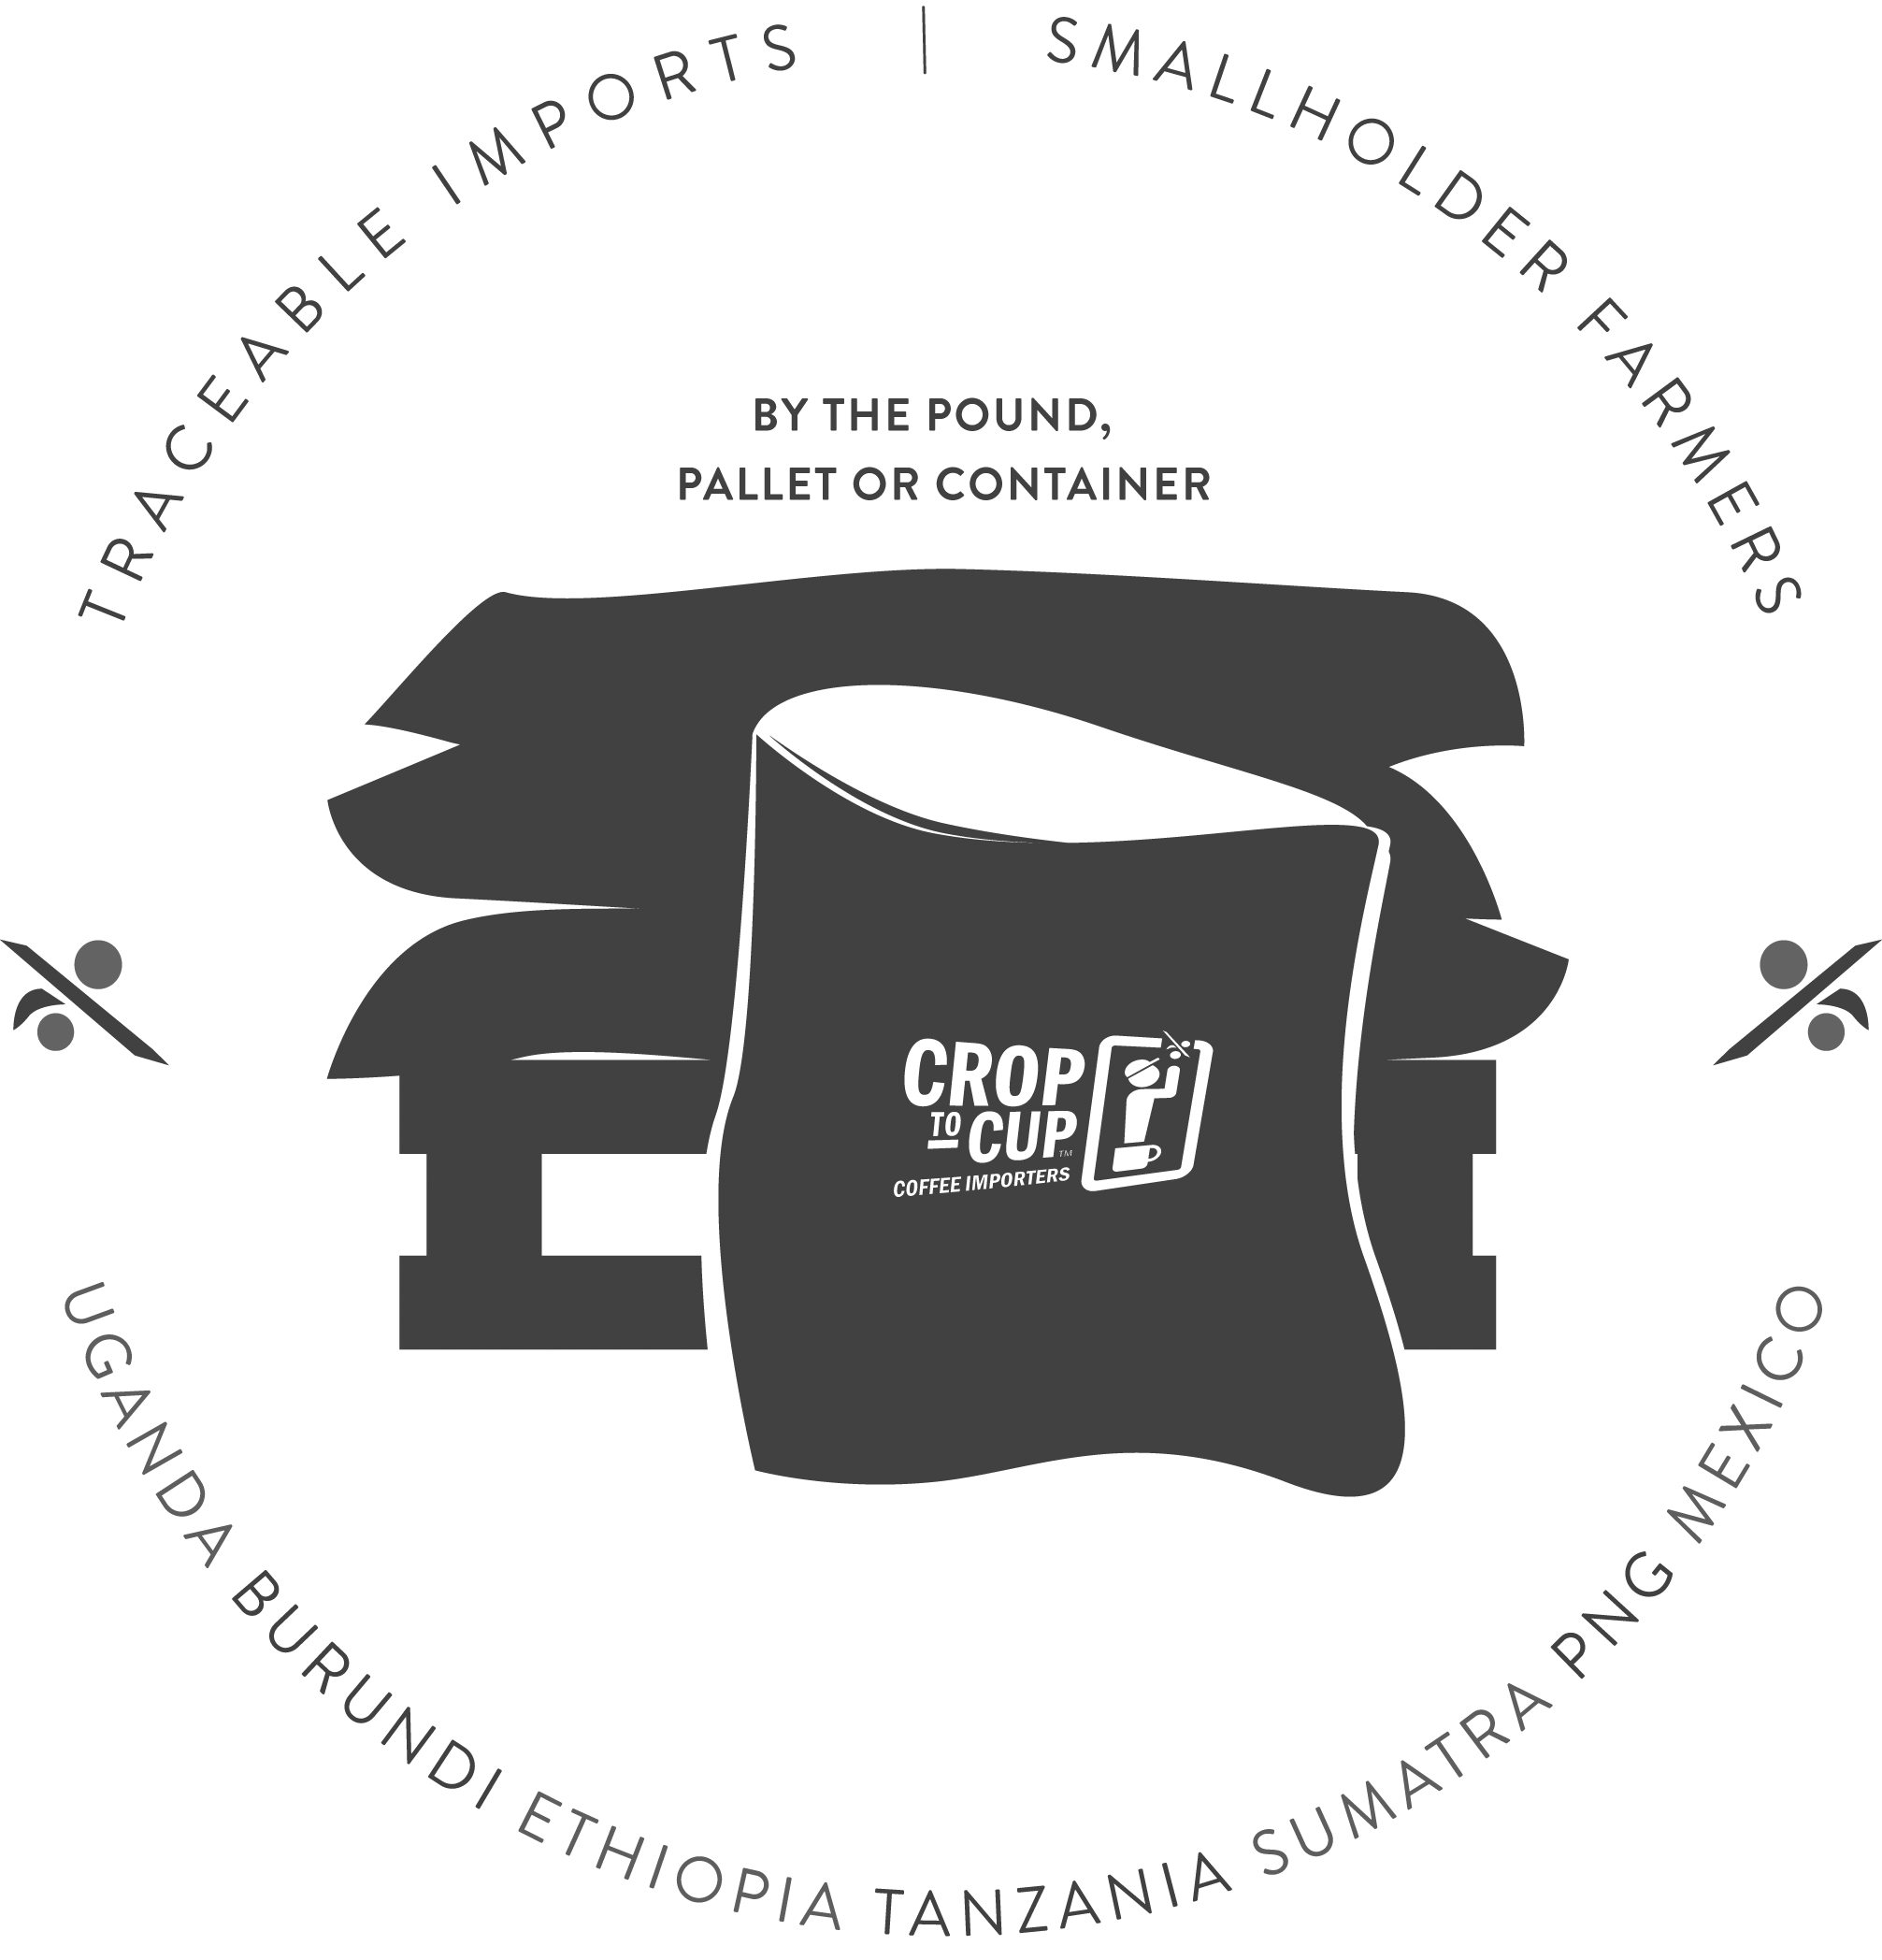 Crop to Cup_061417_CRGR_Gray.png